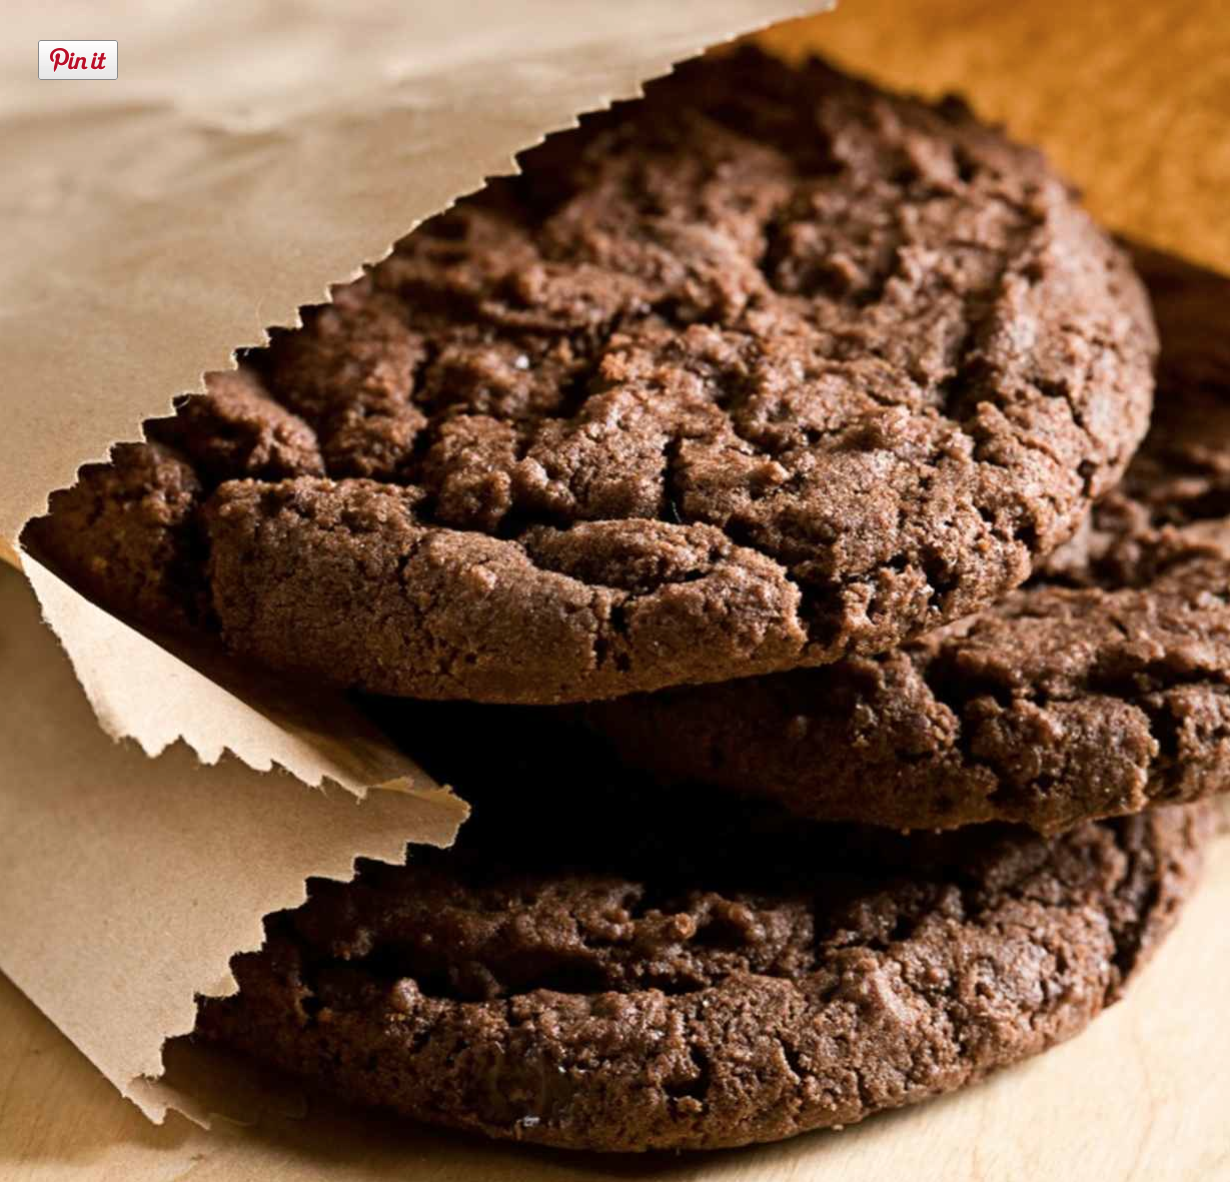 JoyofKosher's Chocolate Chocolate Cookies with Cookie Crumbs by Tamar Genger